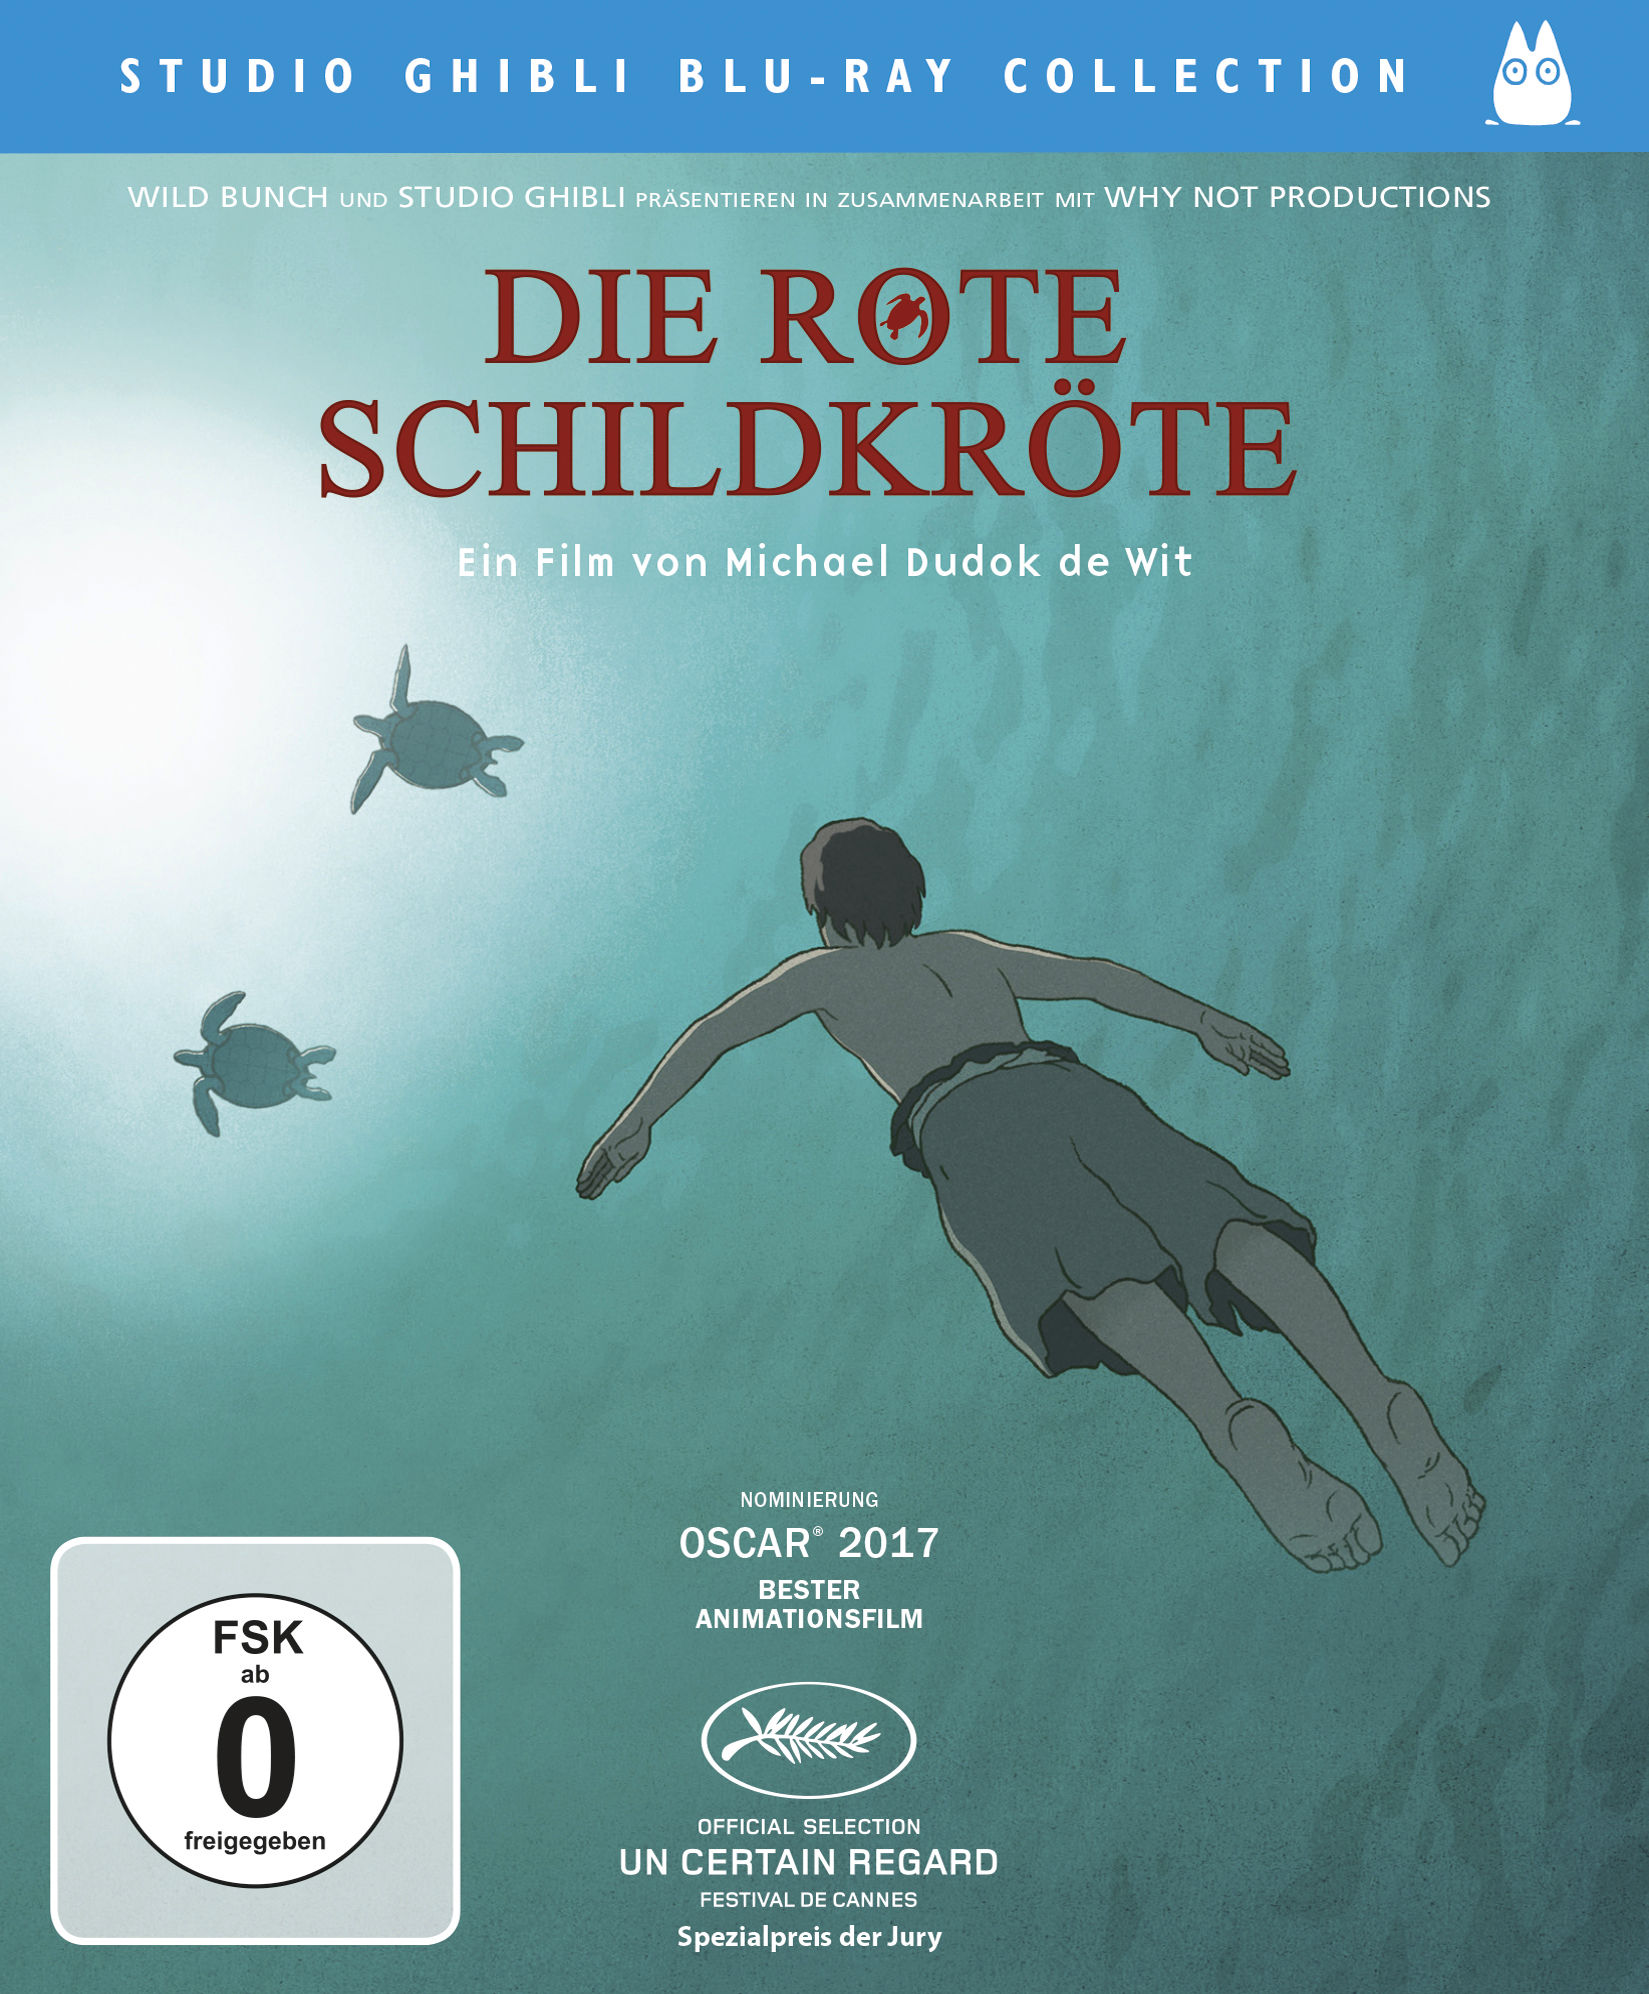 Blu-ray Kritik | Die rote Schildkröte (Full HD Review, Rezension ...